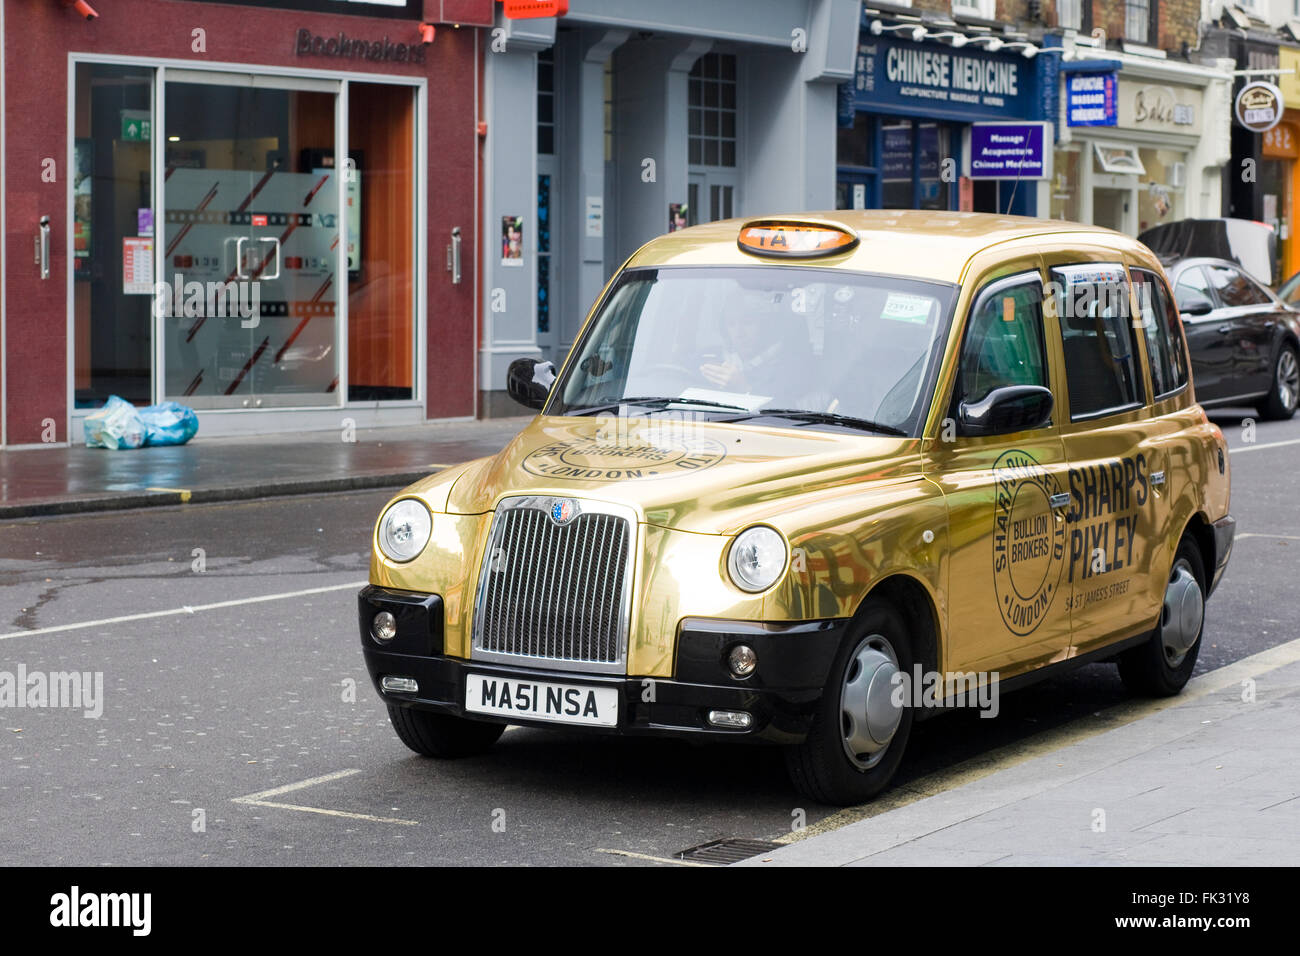 Golden Hackney Cab parked in London - Stock Image